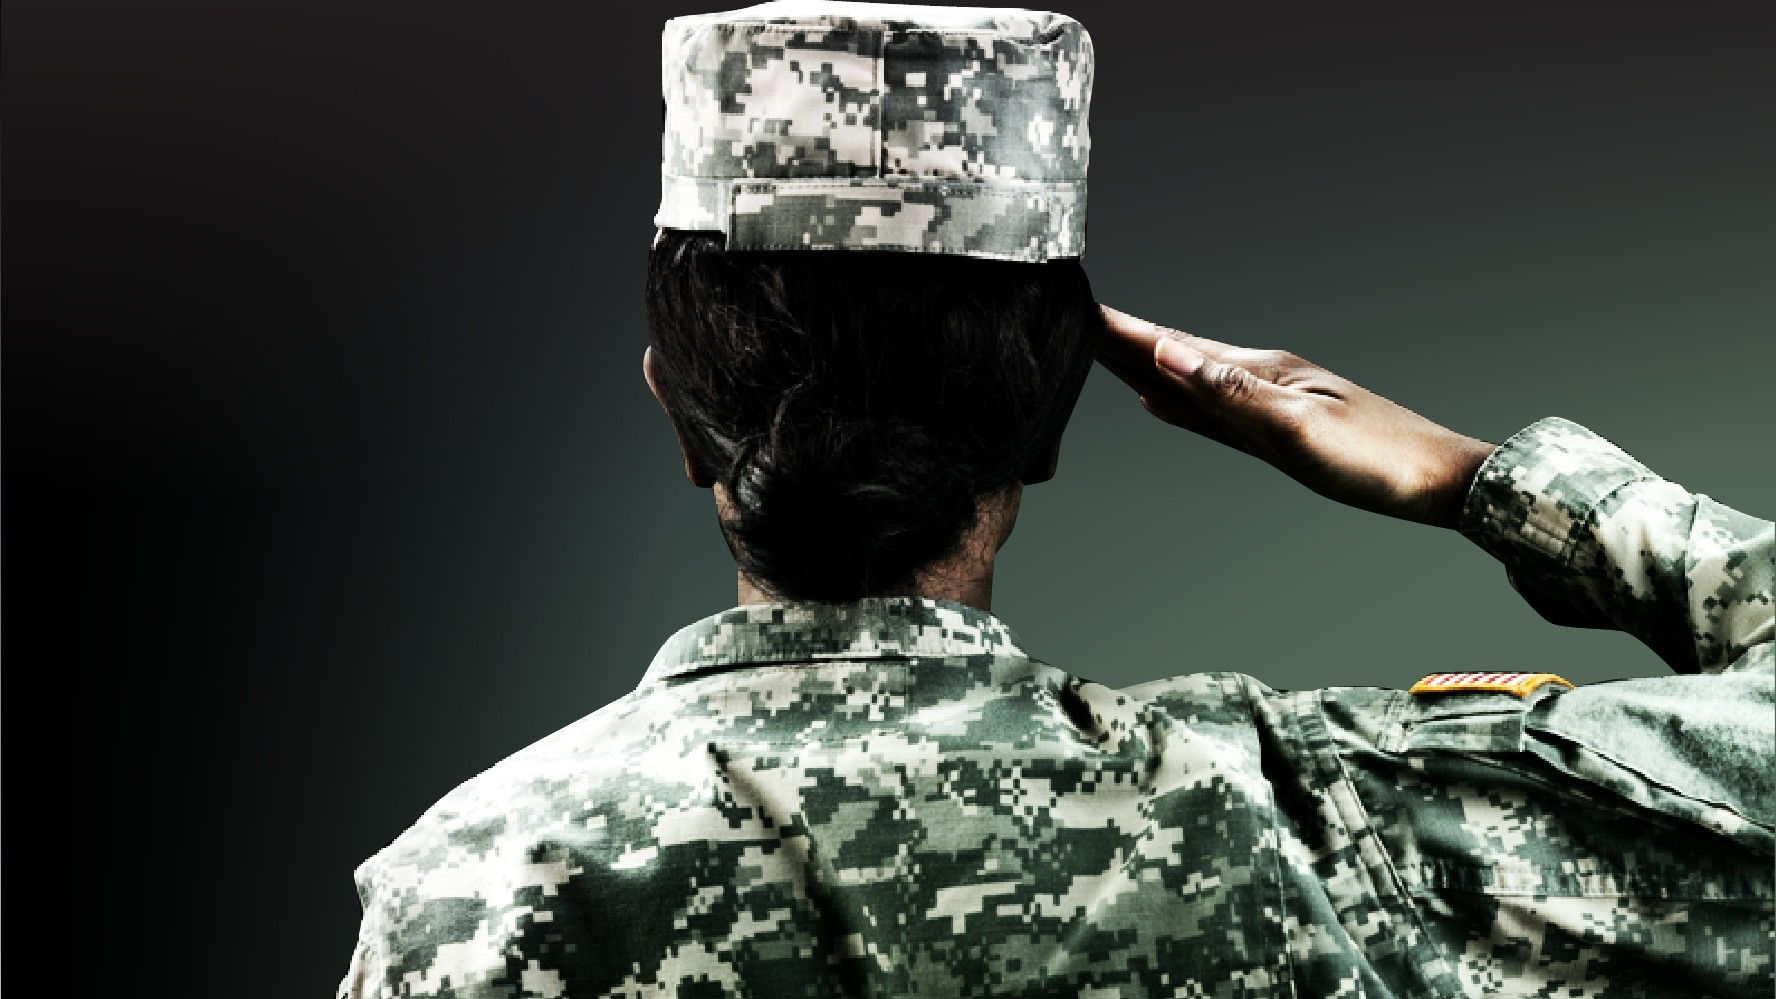 military revenge porn is thriving on anonymous servers and image